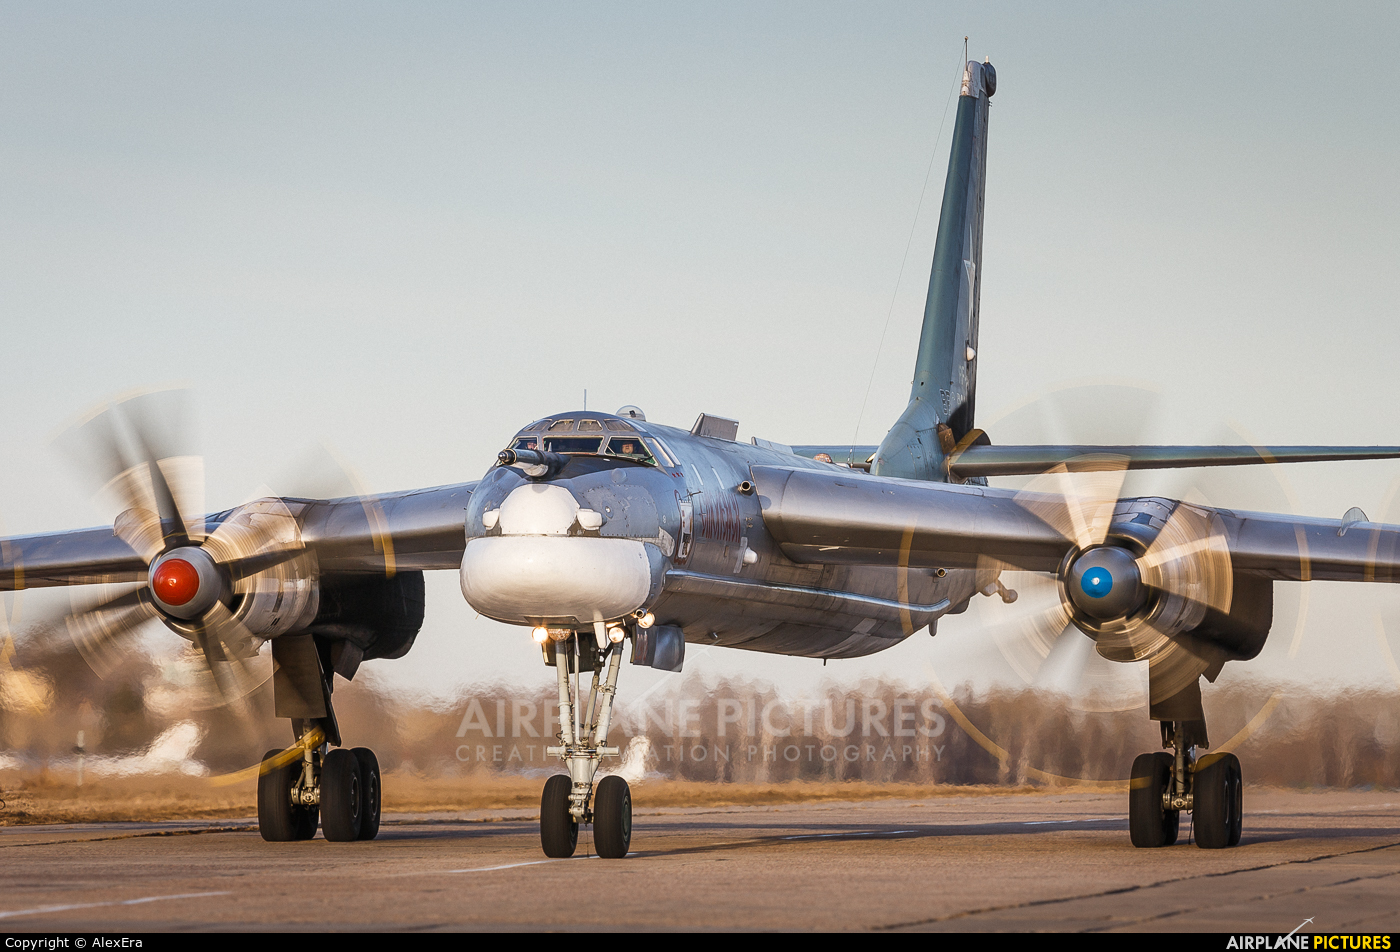 Russia - Air Force RF-94178 aircraft at Undisclosed Location